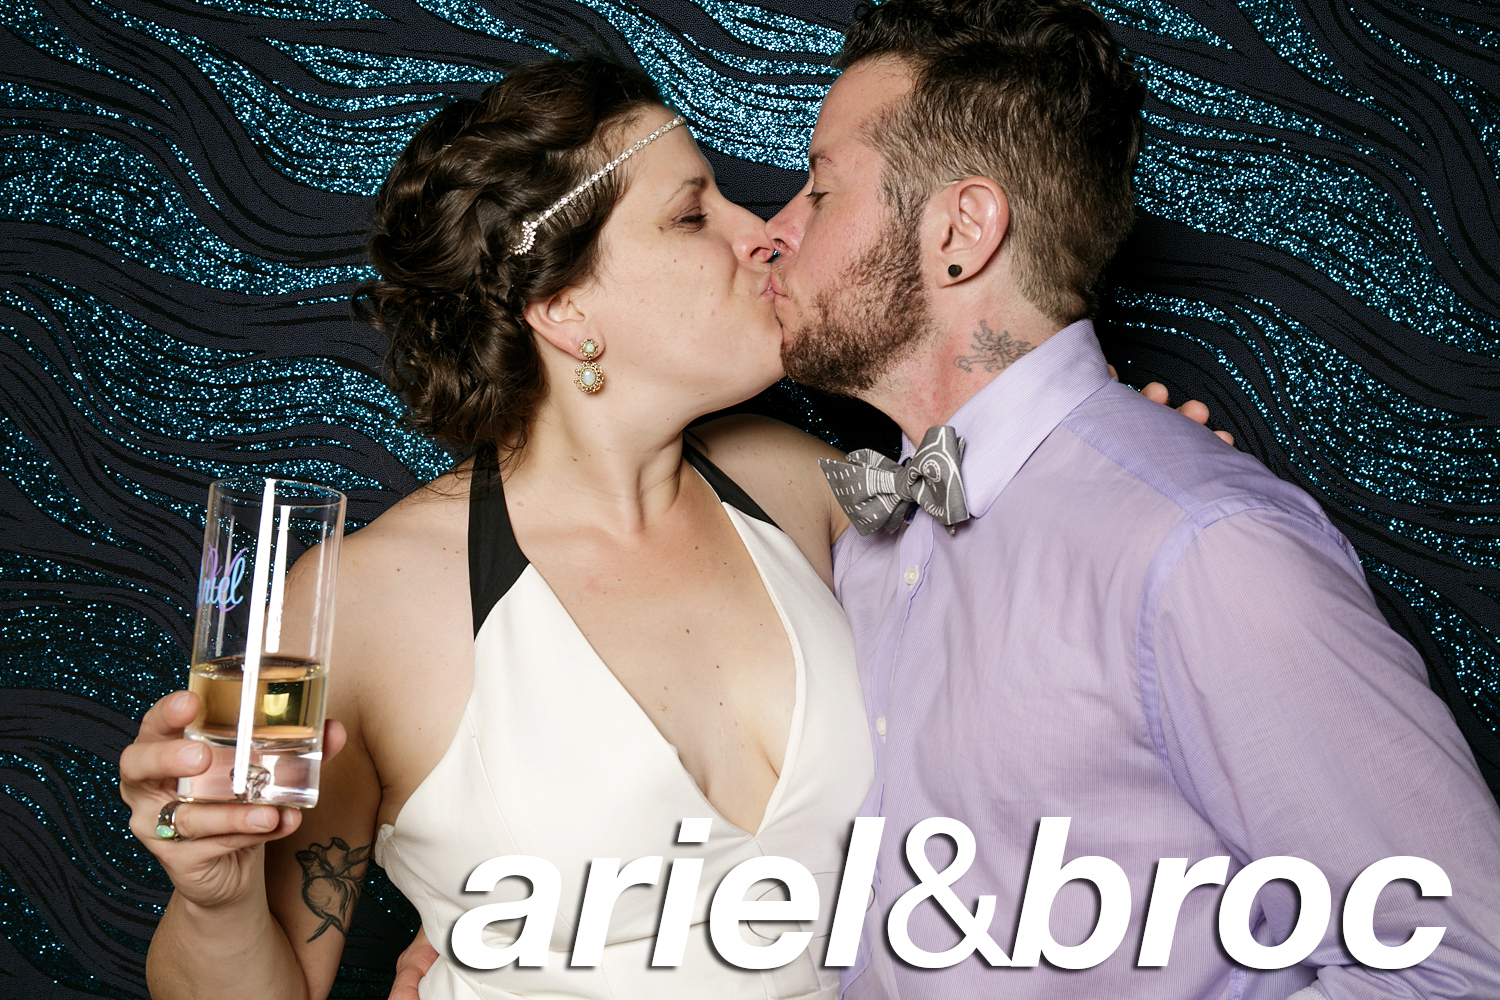 ariel and broc's wedding photo booth